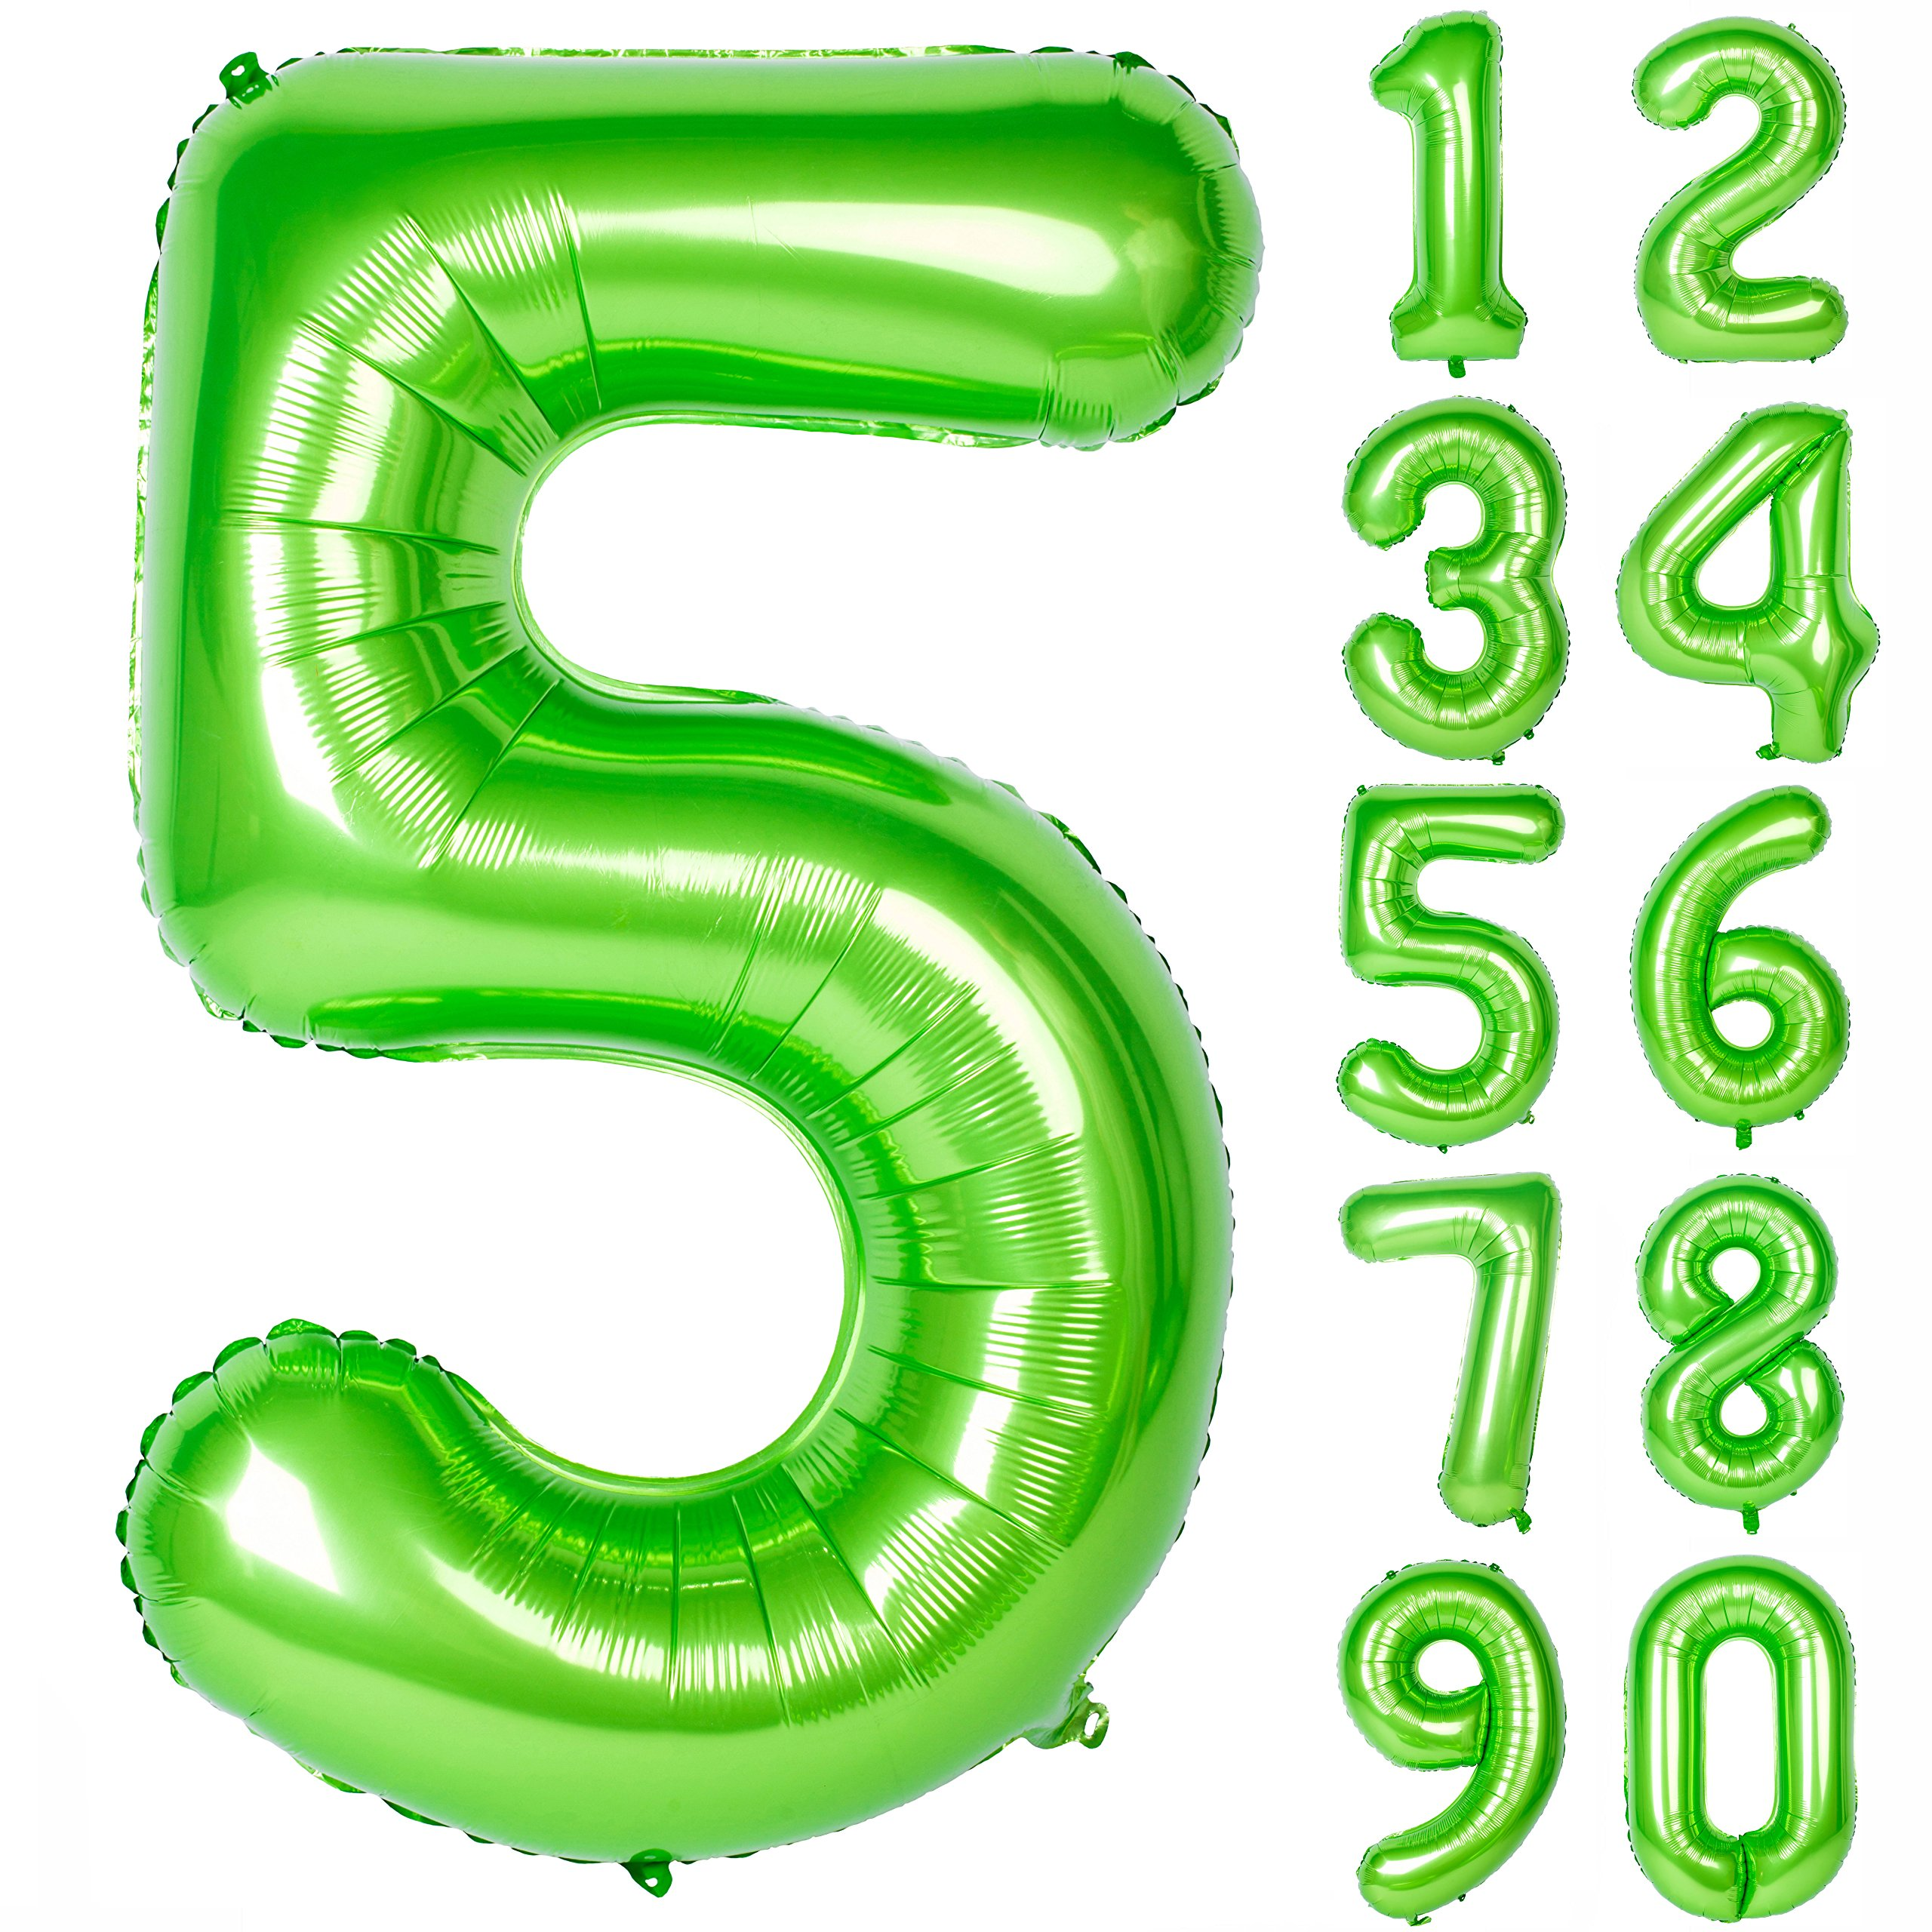 40 Inch Green Large Numbers 0 9 Birthday Party Baloon Number Decorations Helium Foil Mylar Big